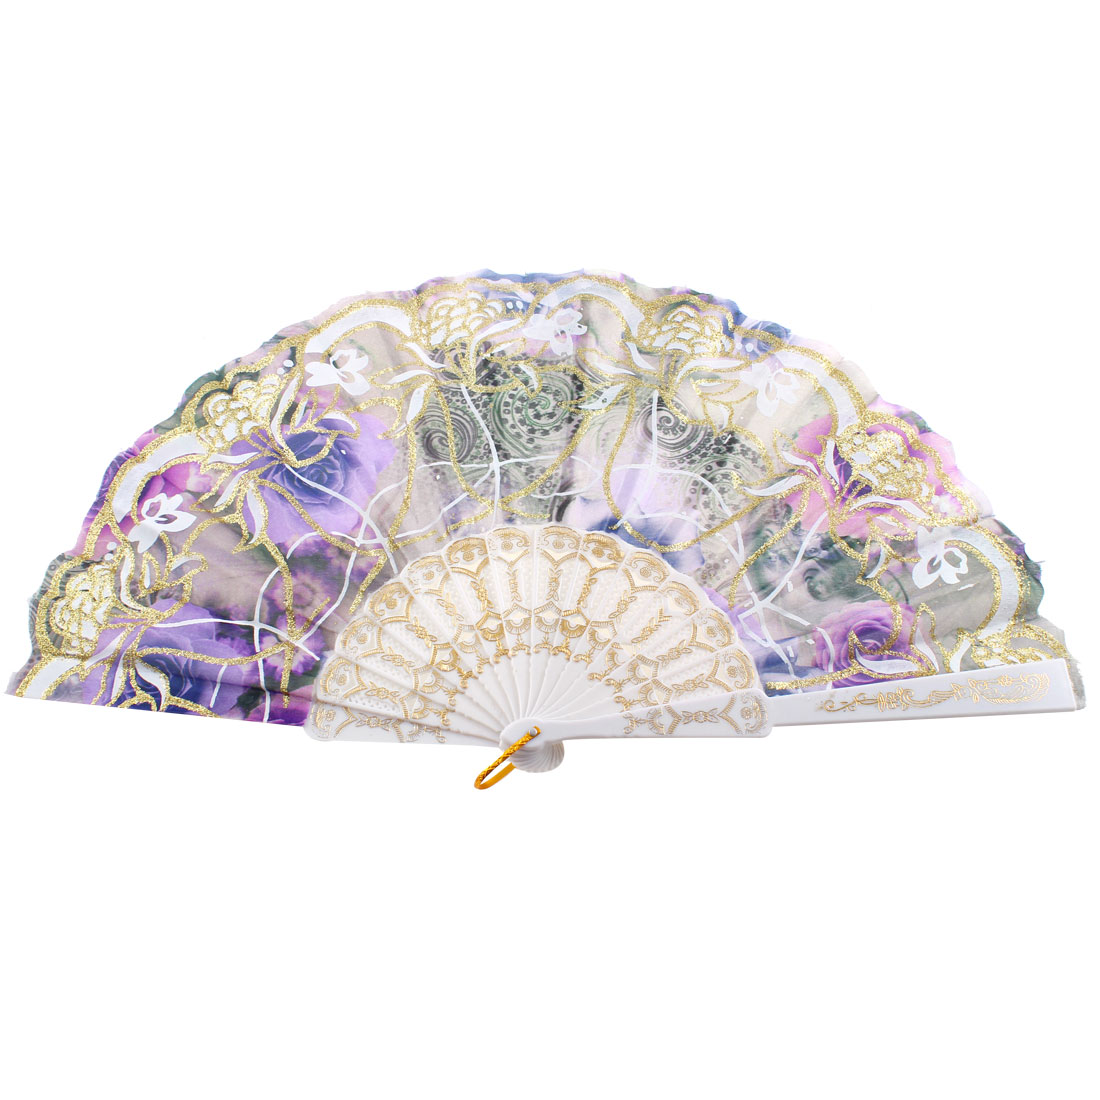 Women Glittery Powder Adorn Rose Pattern Wedding Gift Folded Hand Fan Purple